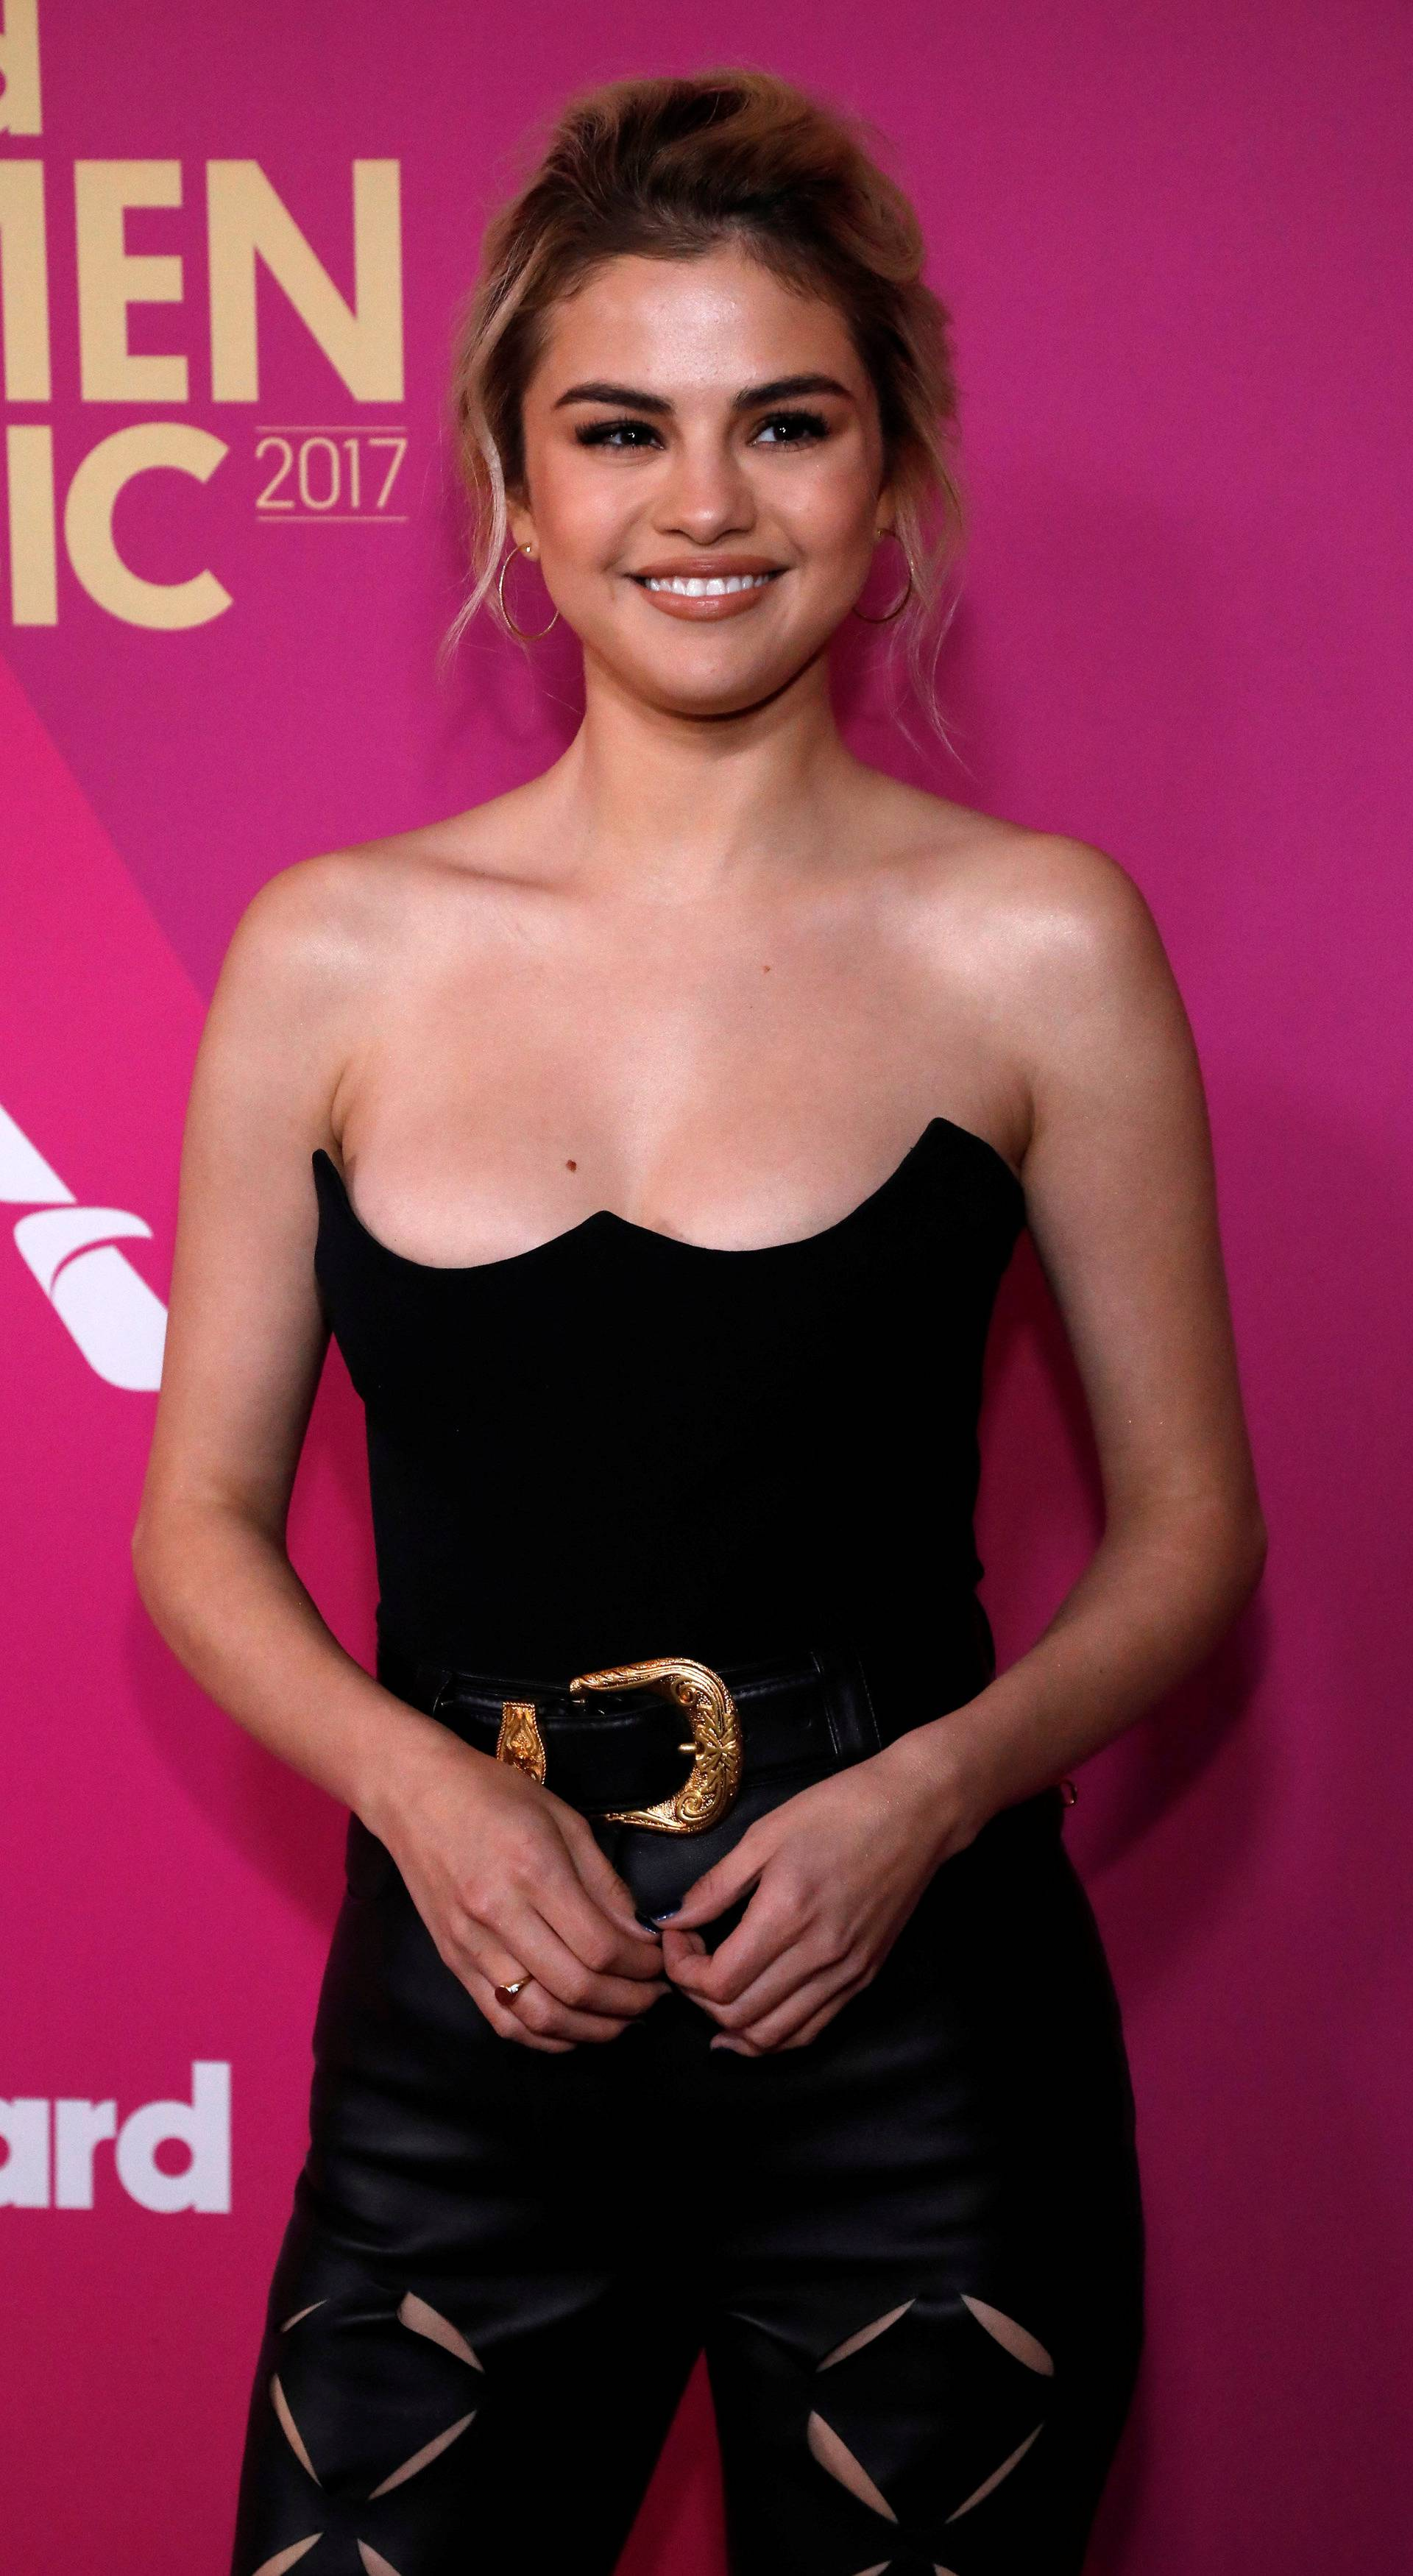 Singer Gomez poses at the Billboard Women in Music awards in Los Angeles